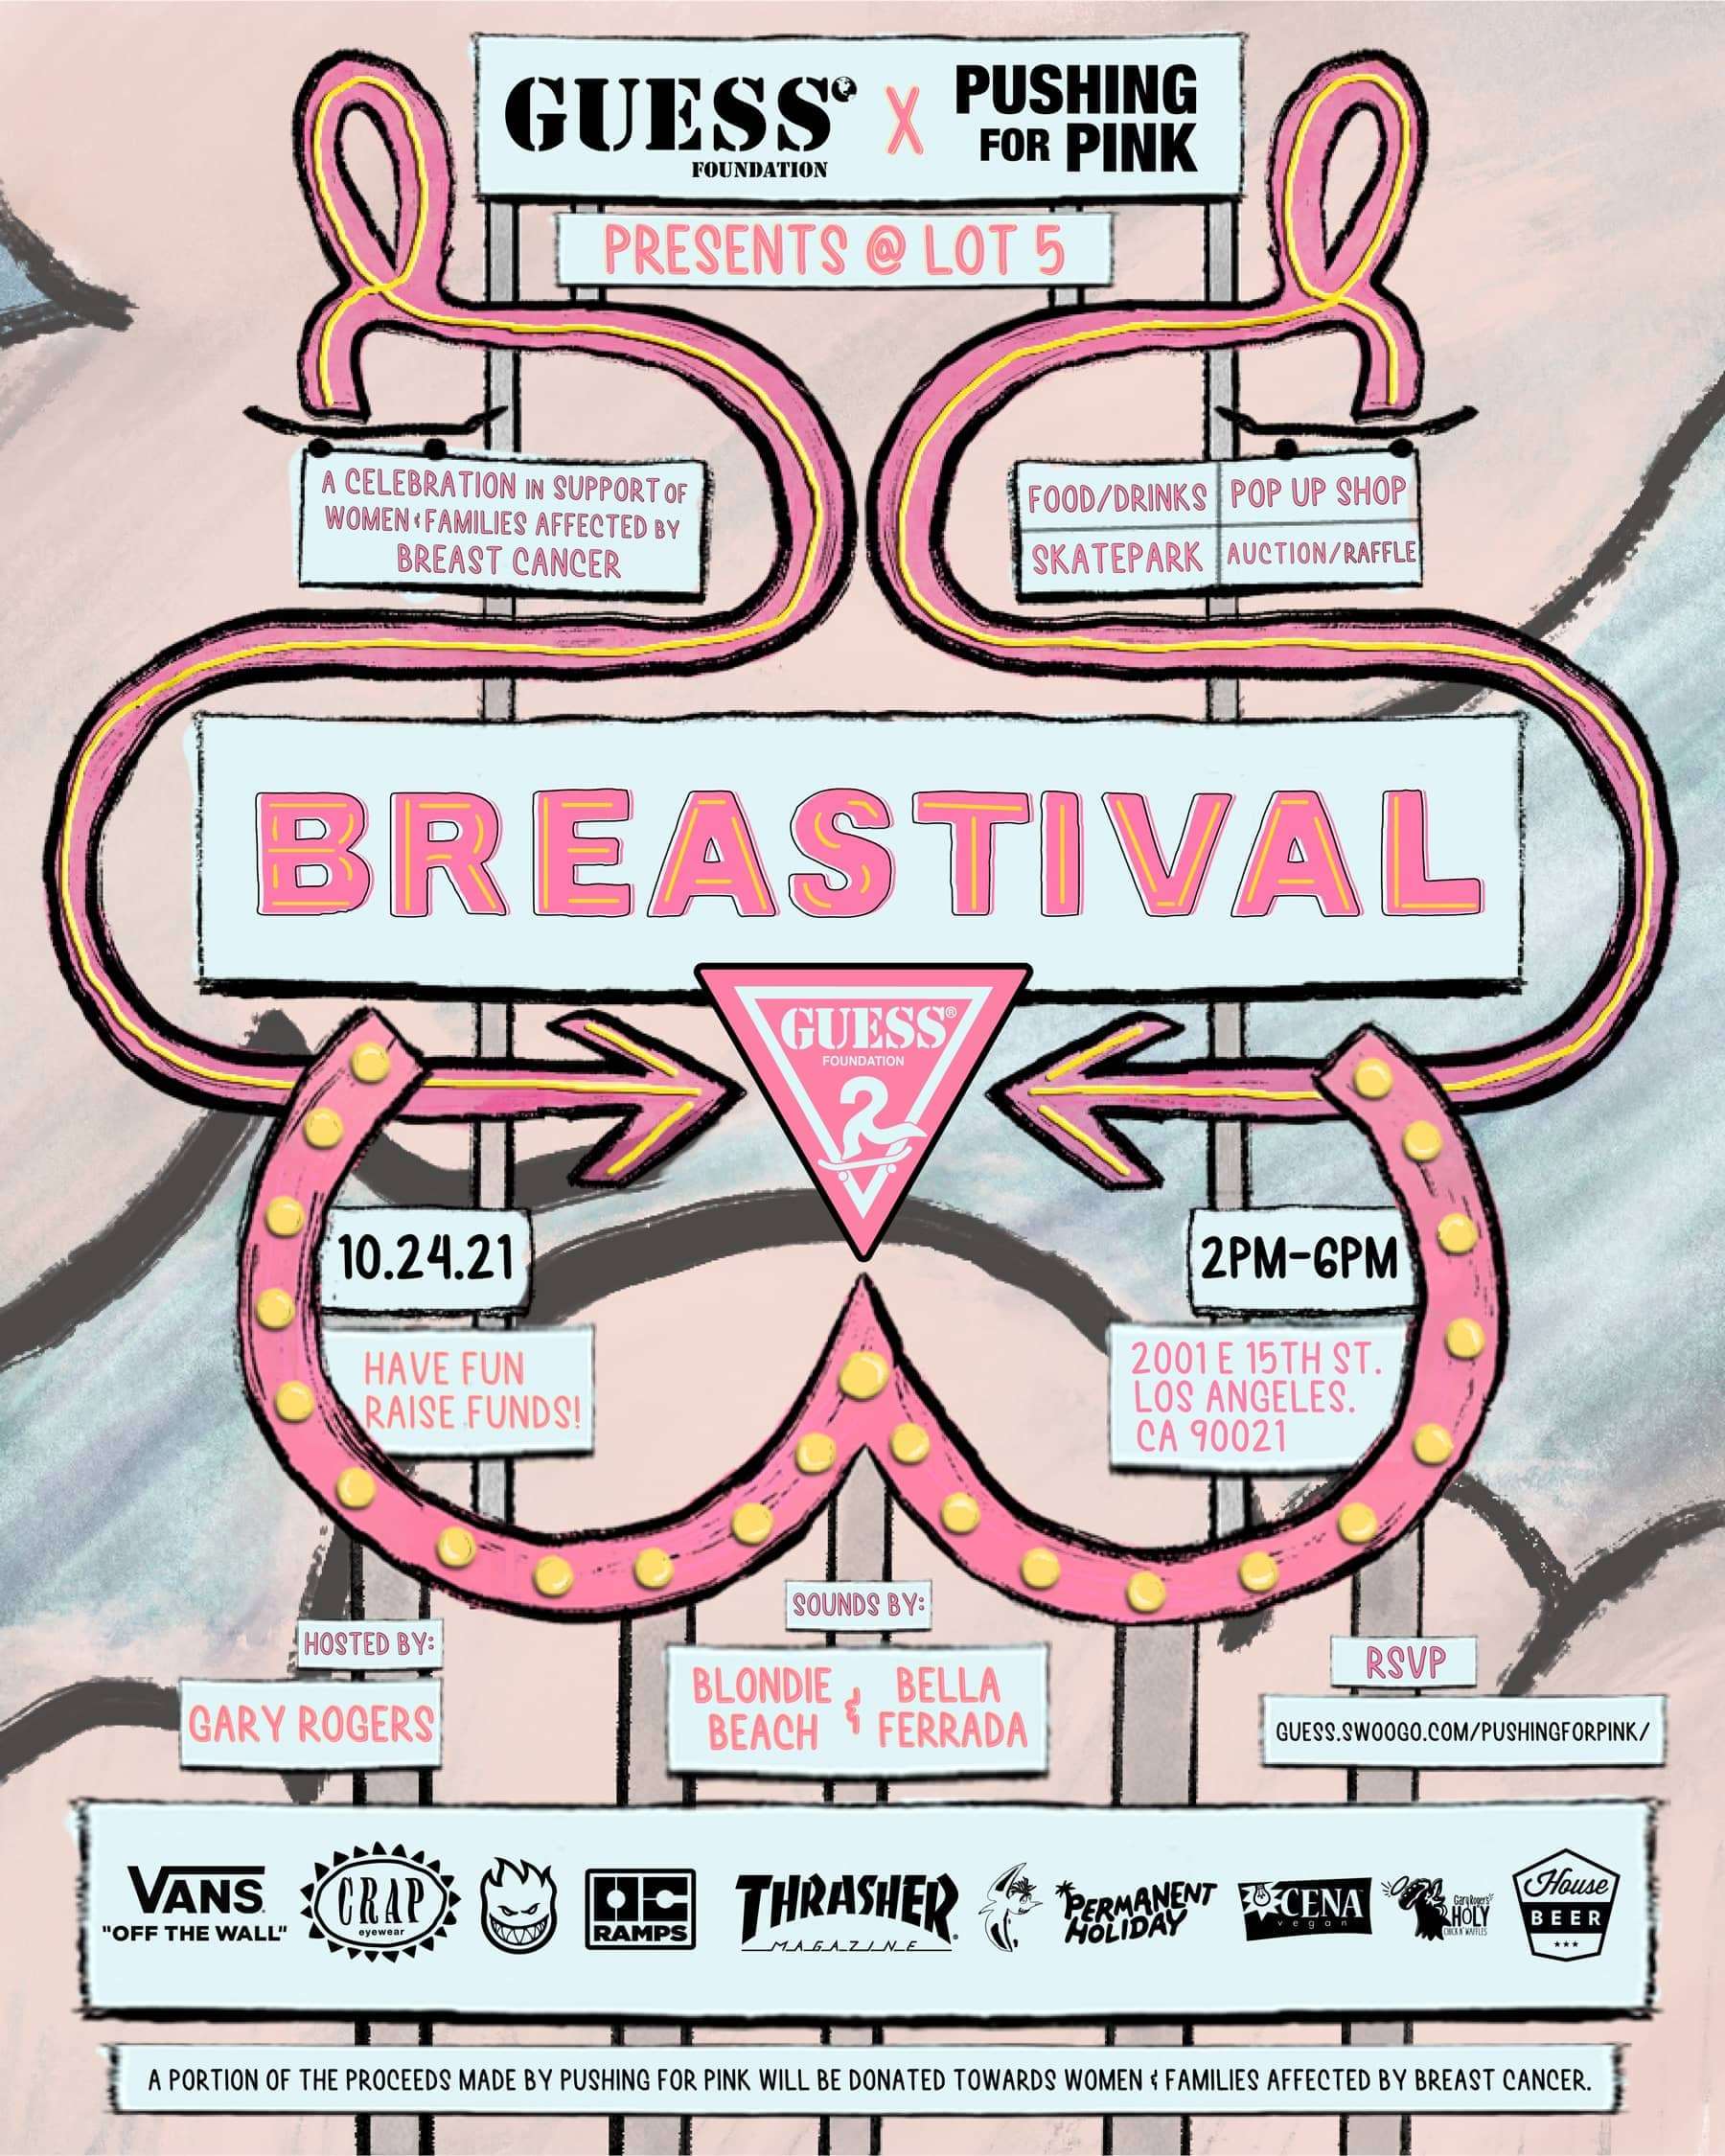 2021 flyer for Pushing For Pink's Breastival event.